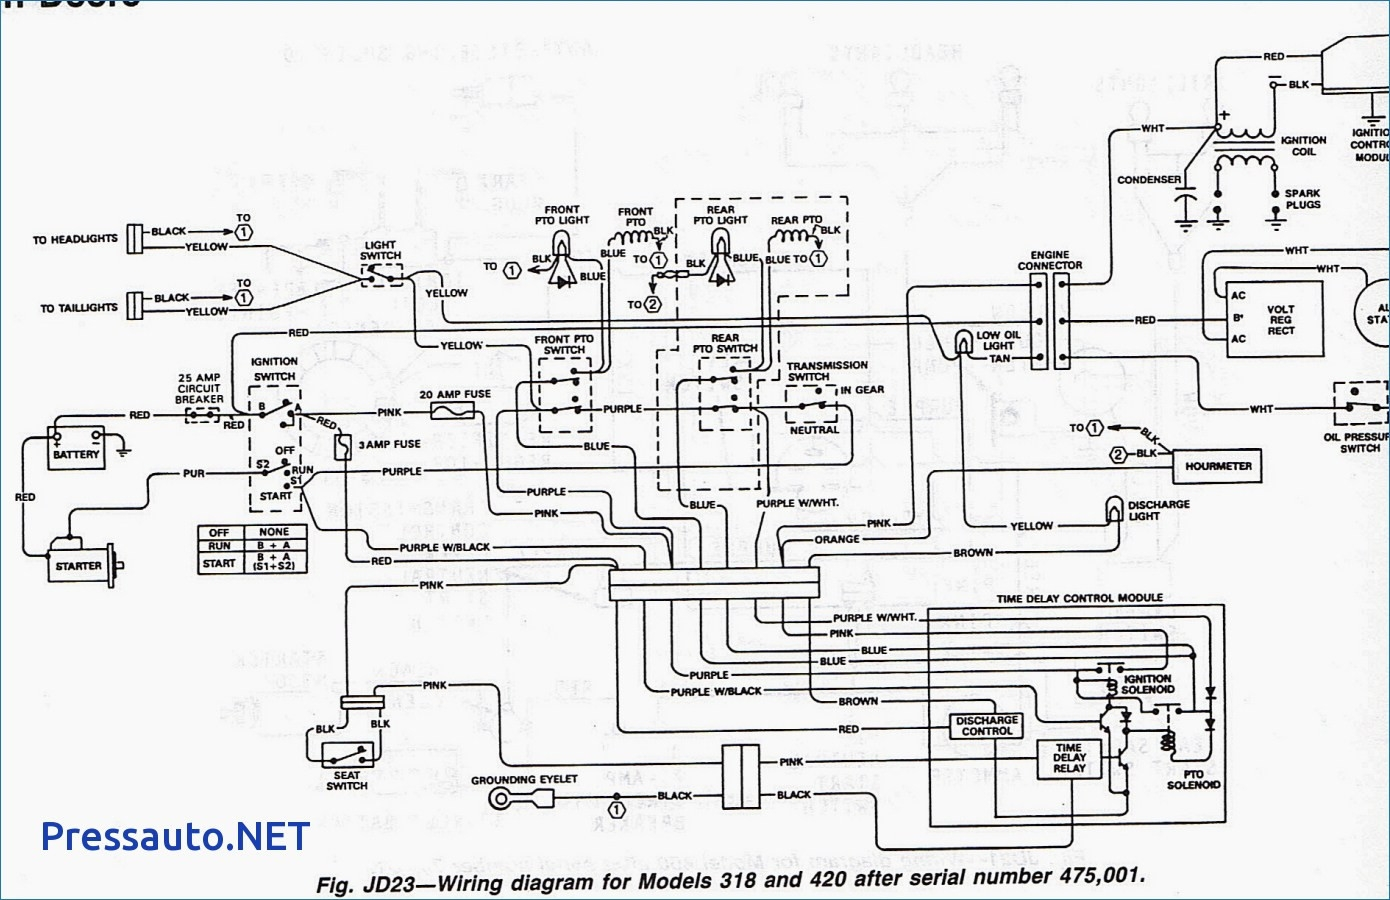 john deere stx38 pto clutch wiring diagram john circuit diagrams